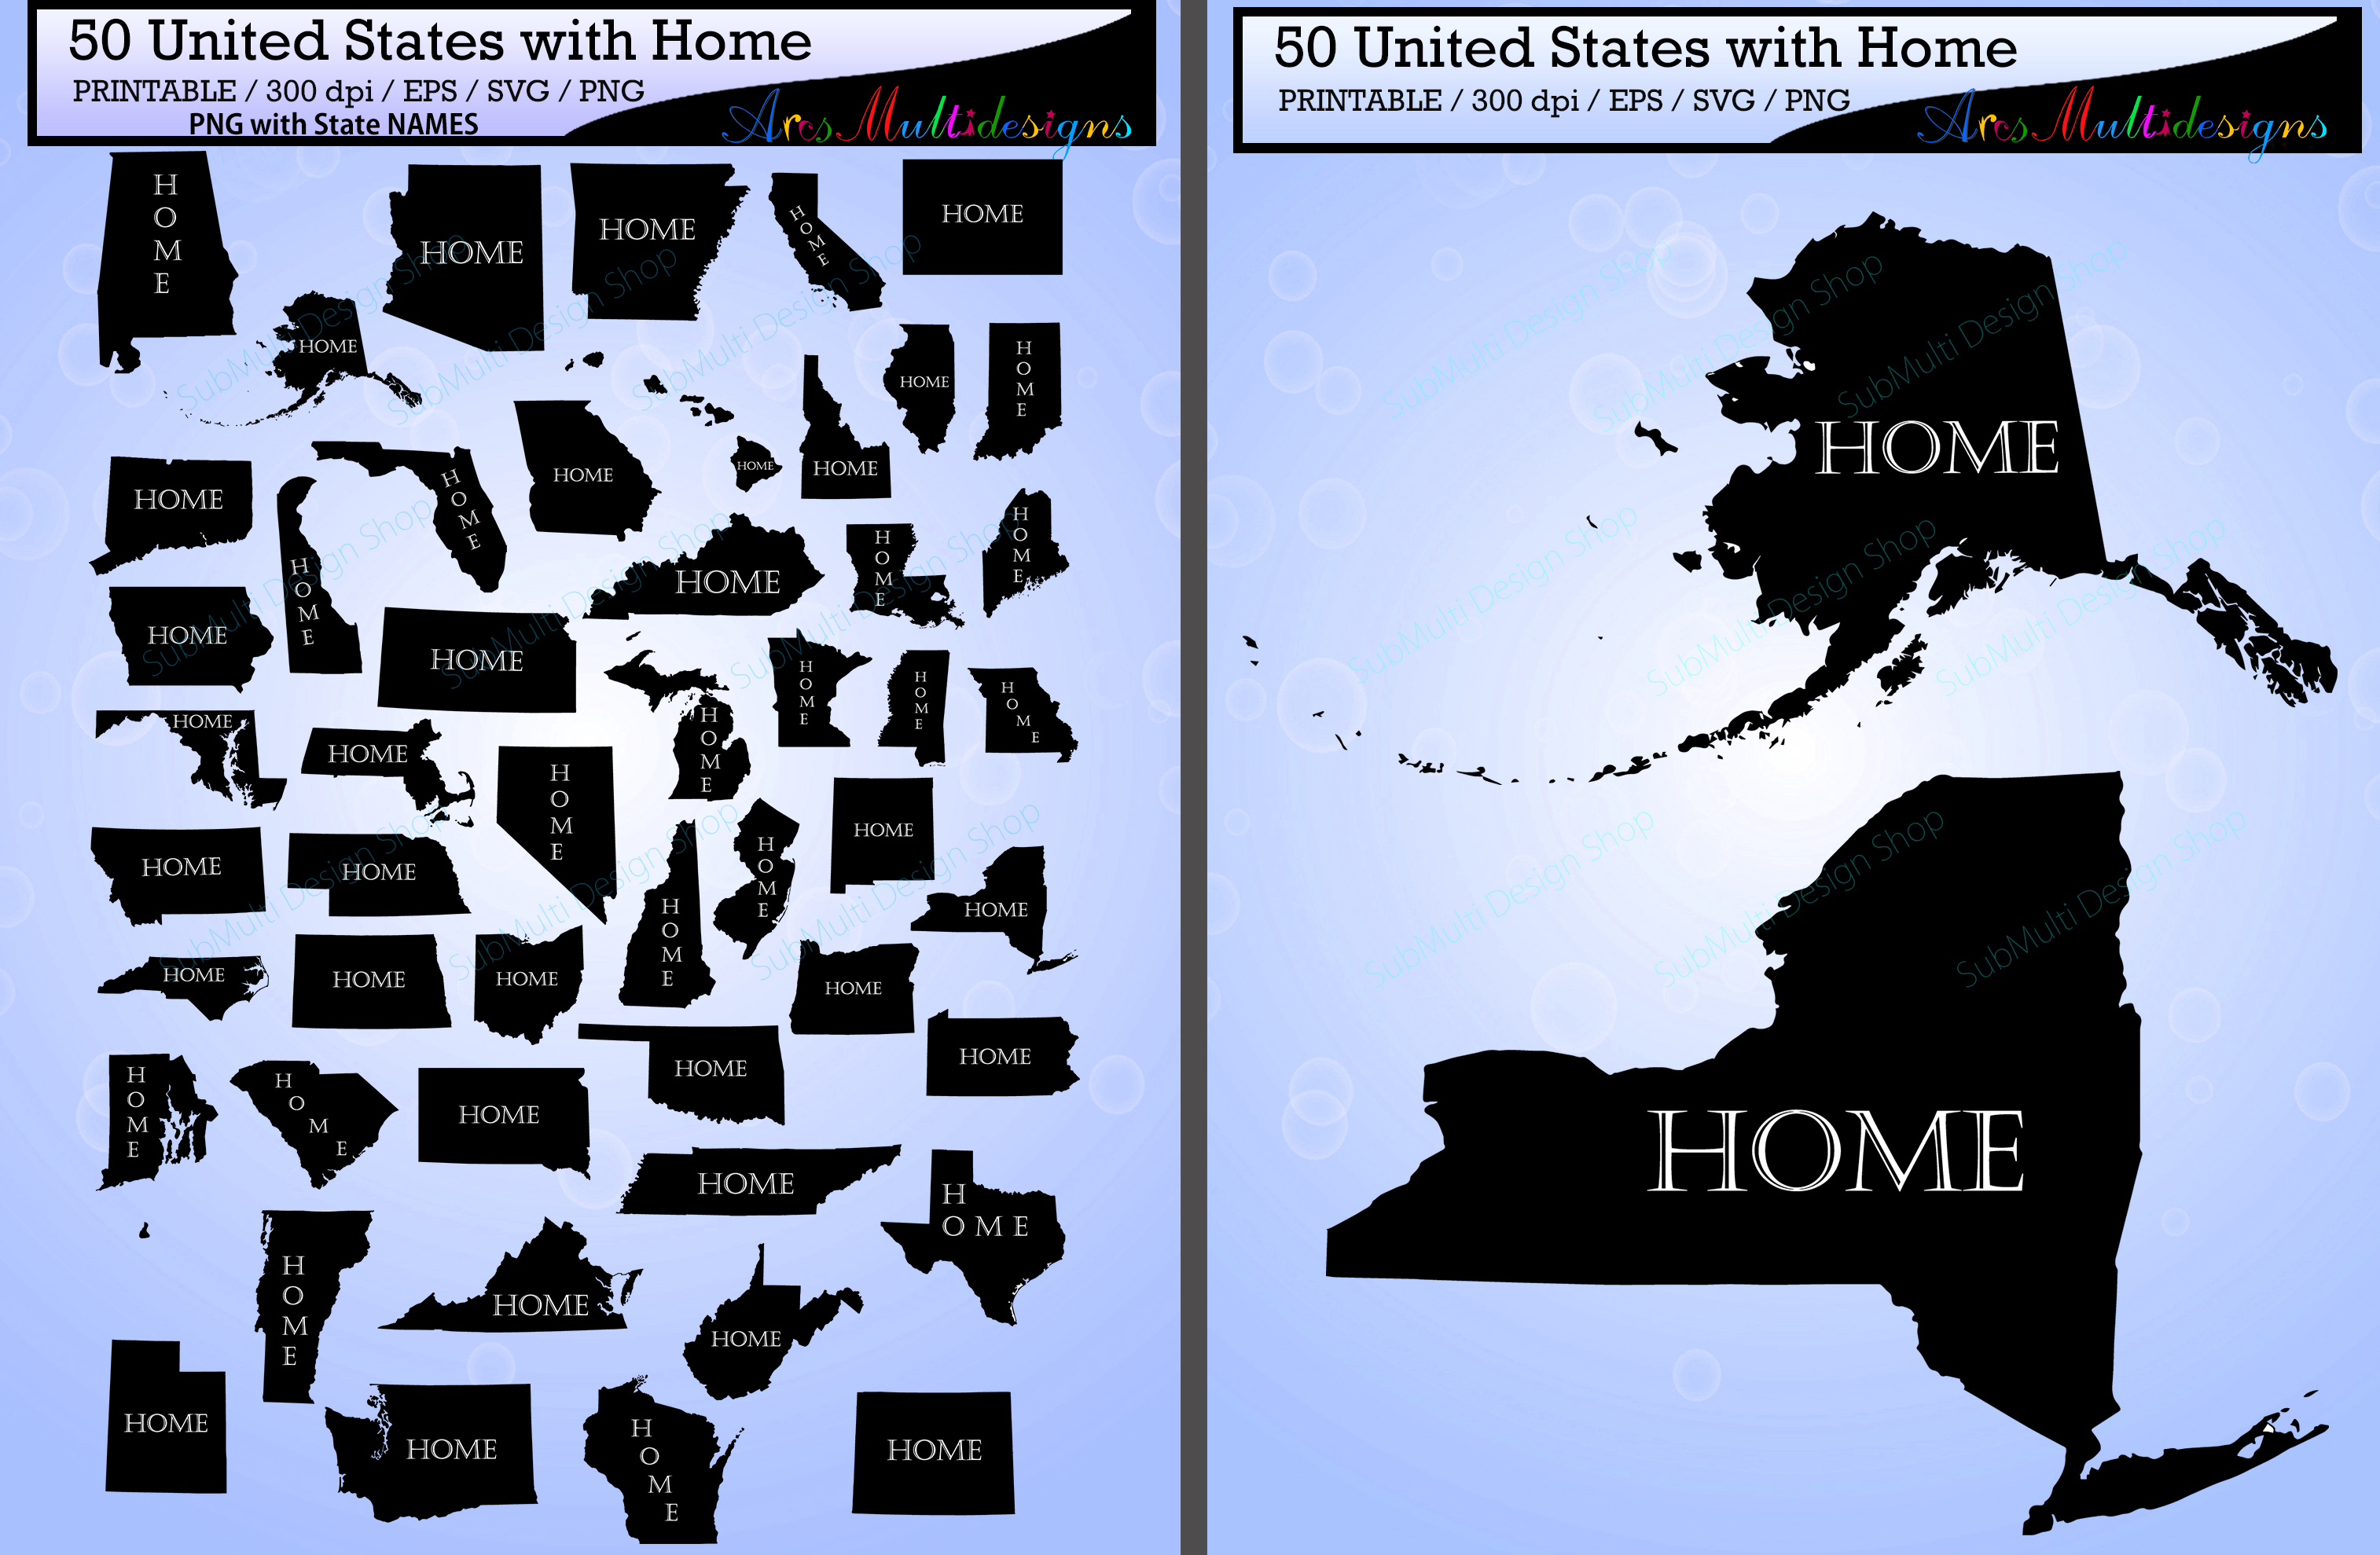 United States Map Svg.United States Map With Home Vector 50 States With Capital Map Us